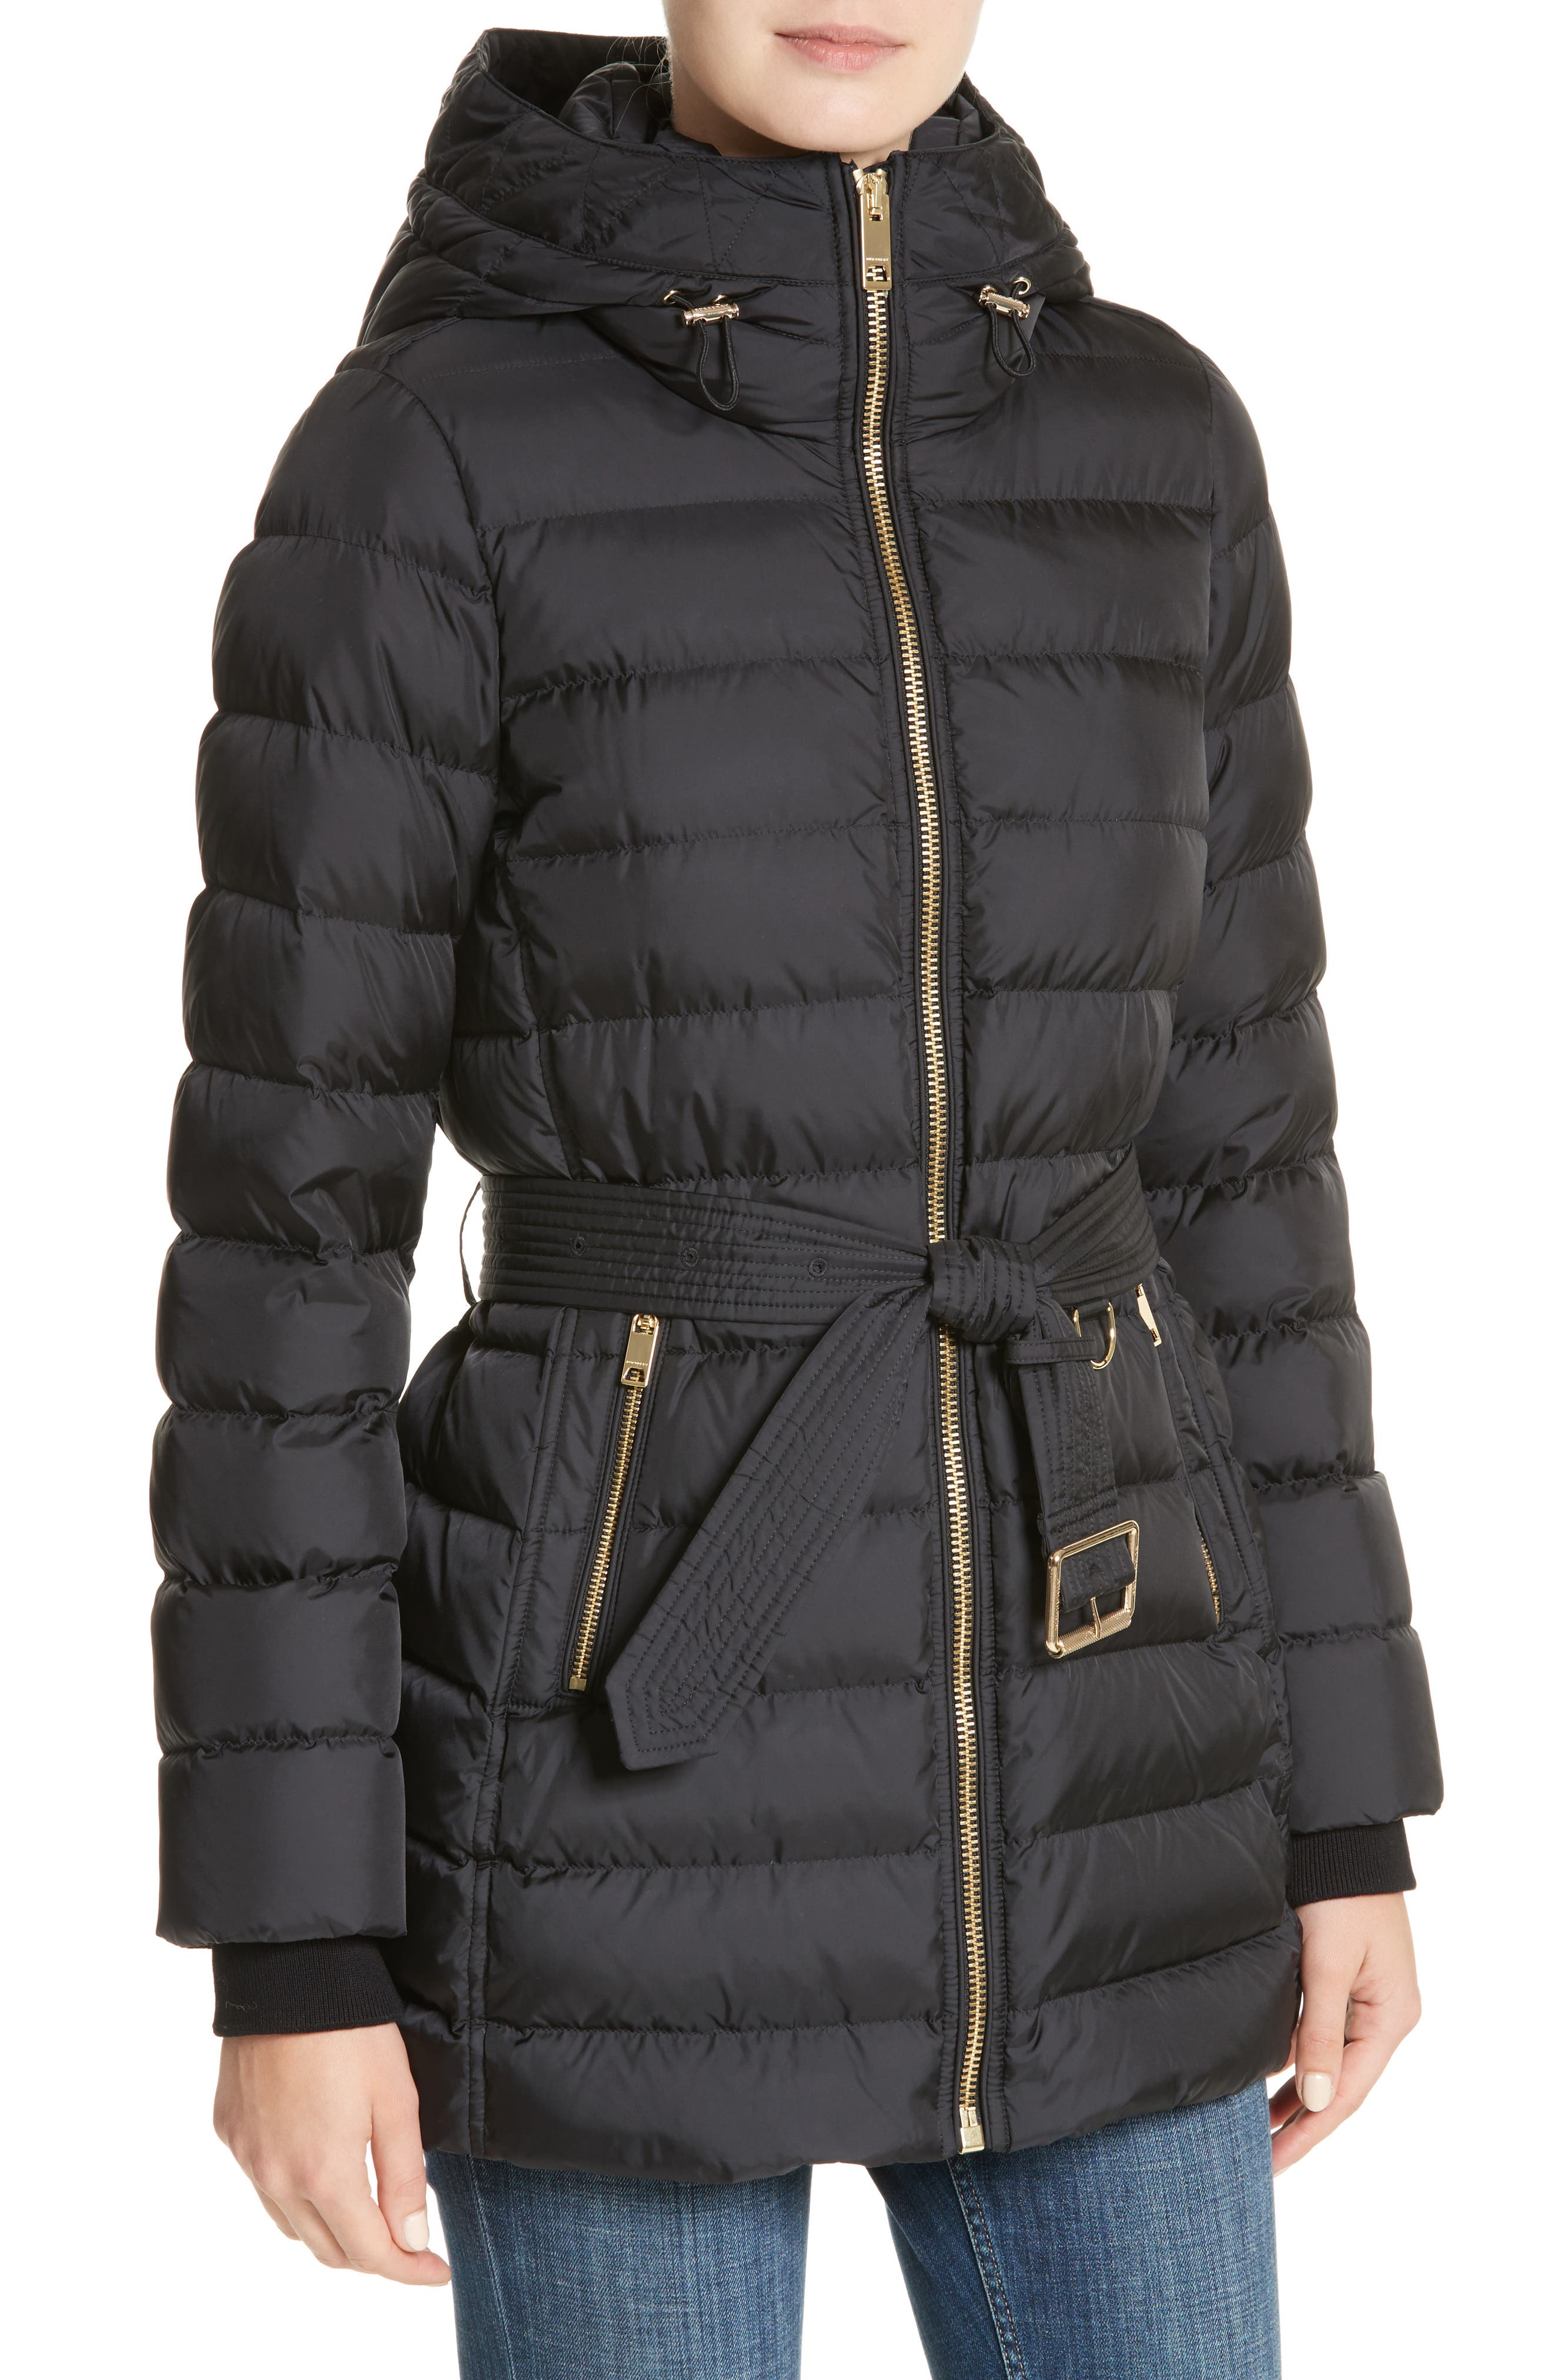 Limefield Hooded Puffer Coat,                             Alternate thumbnail 4, color,                             001